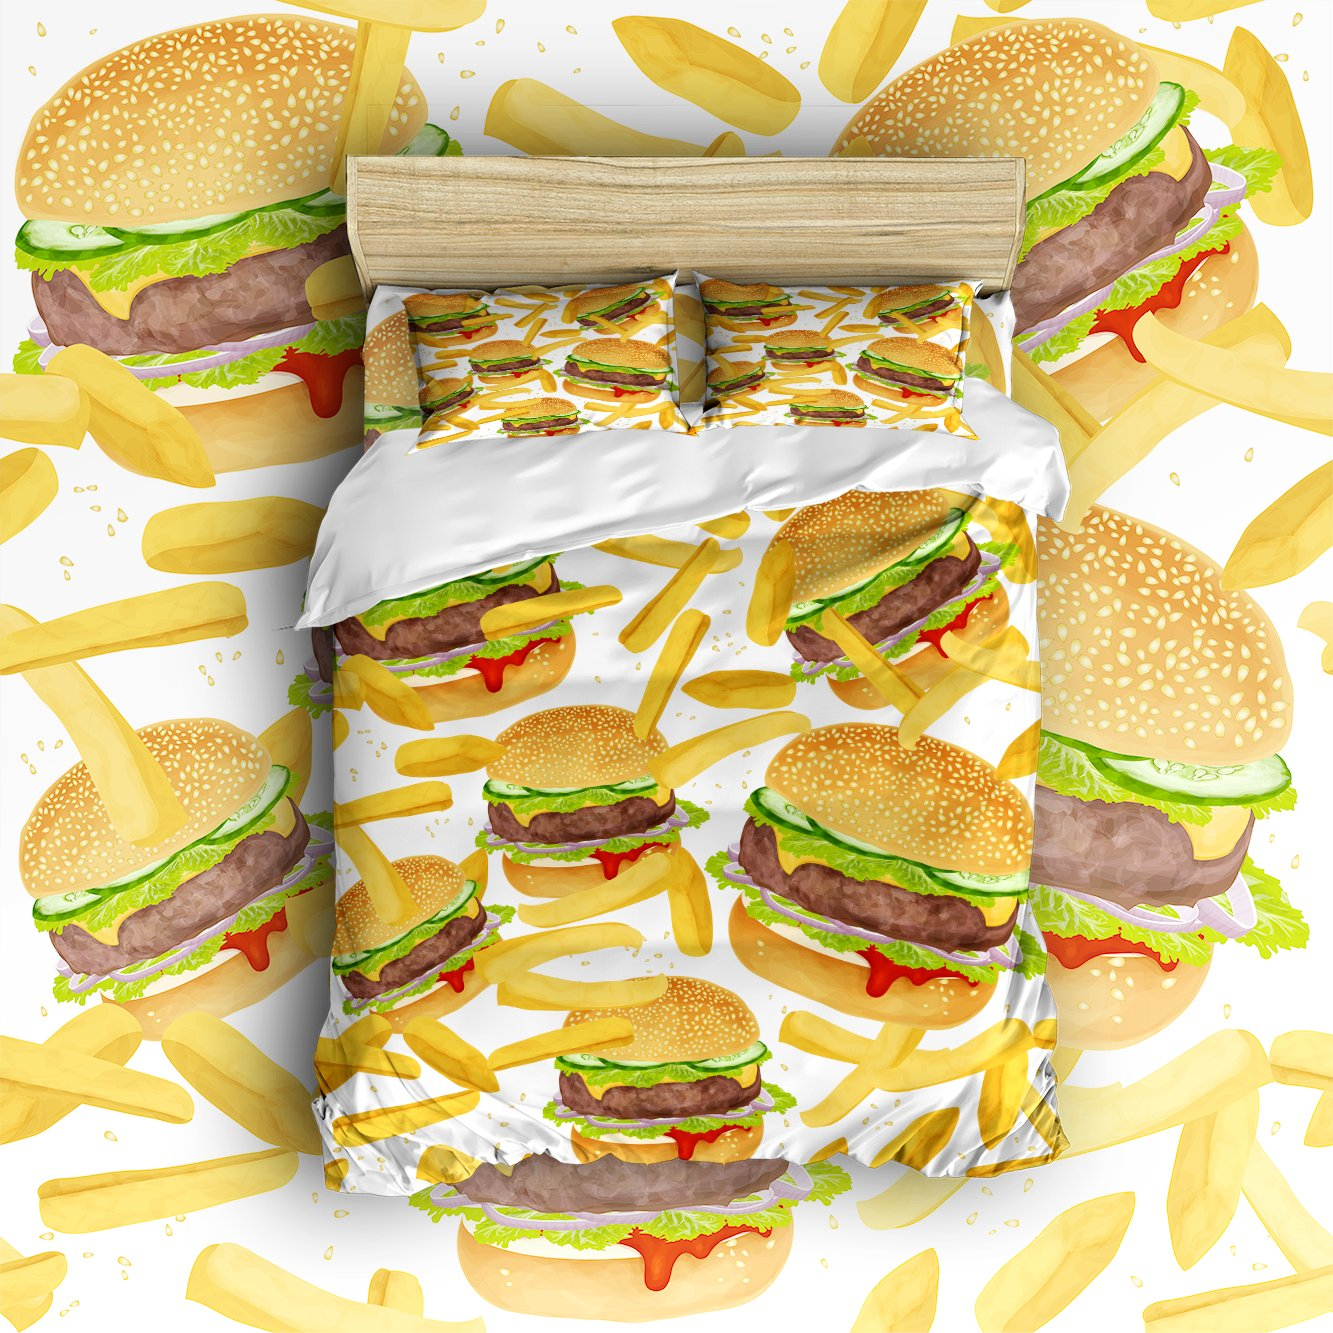 Beauty Decor Bedding 4 Piece bed Set Duvet Cover,Hamburgers and Fries theme 4 Piece Bed Sheet Set 1 Flat Sheet 1 Fitted Sheet and 19 Pillow Cases